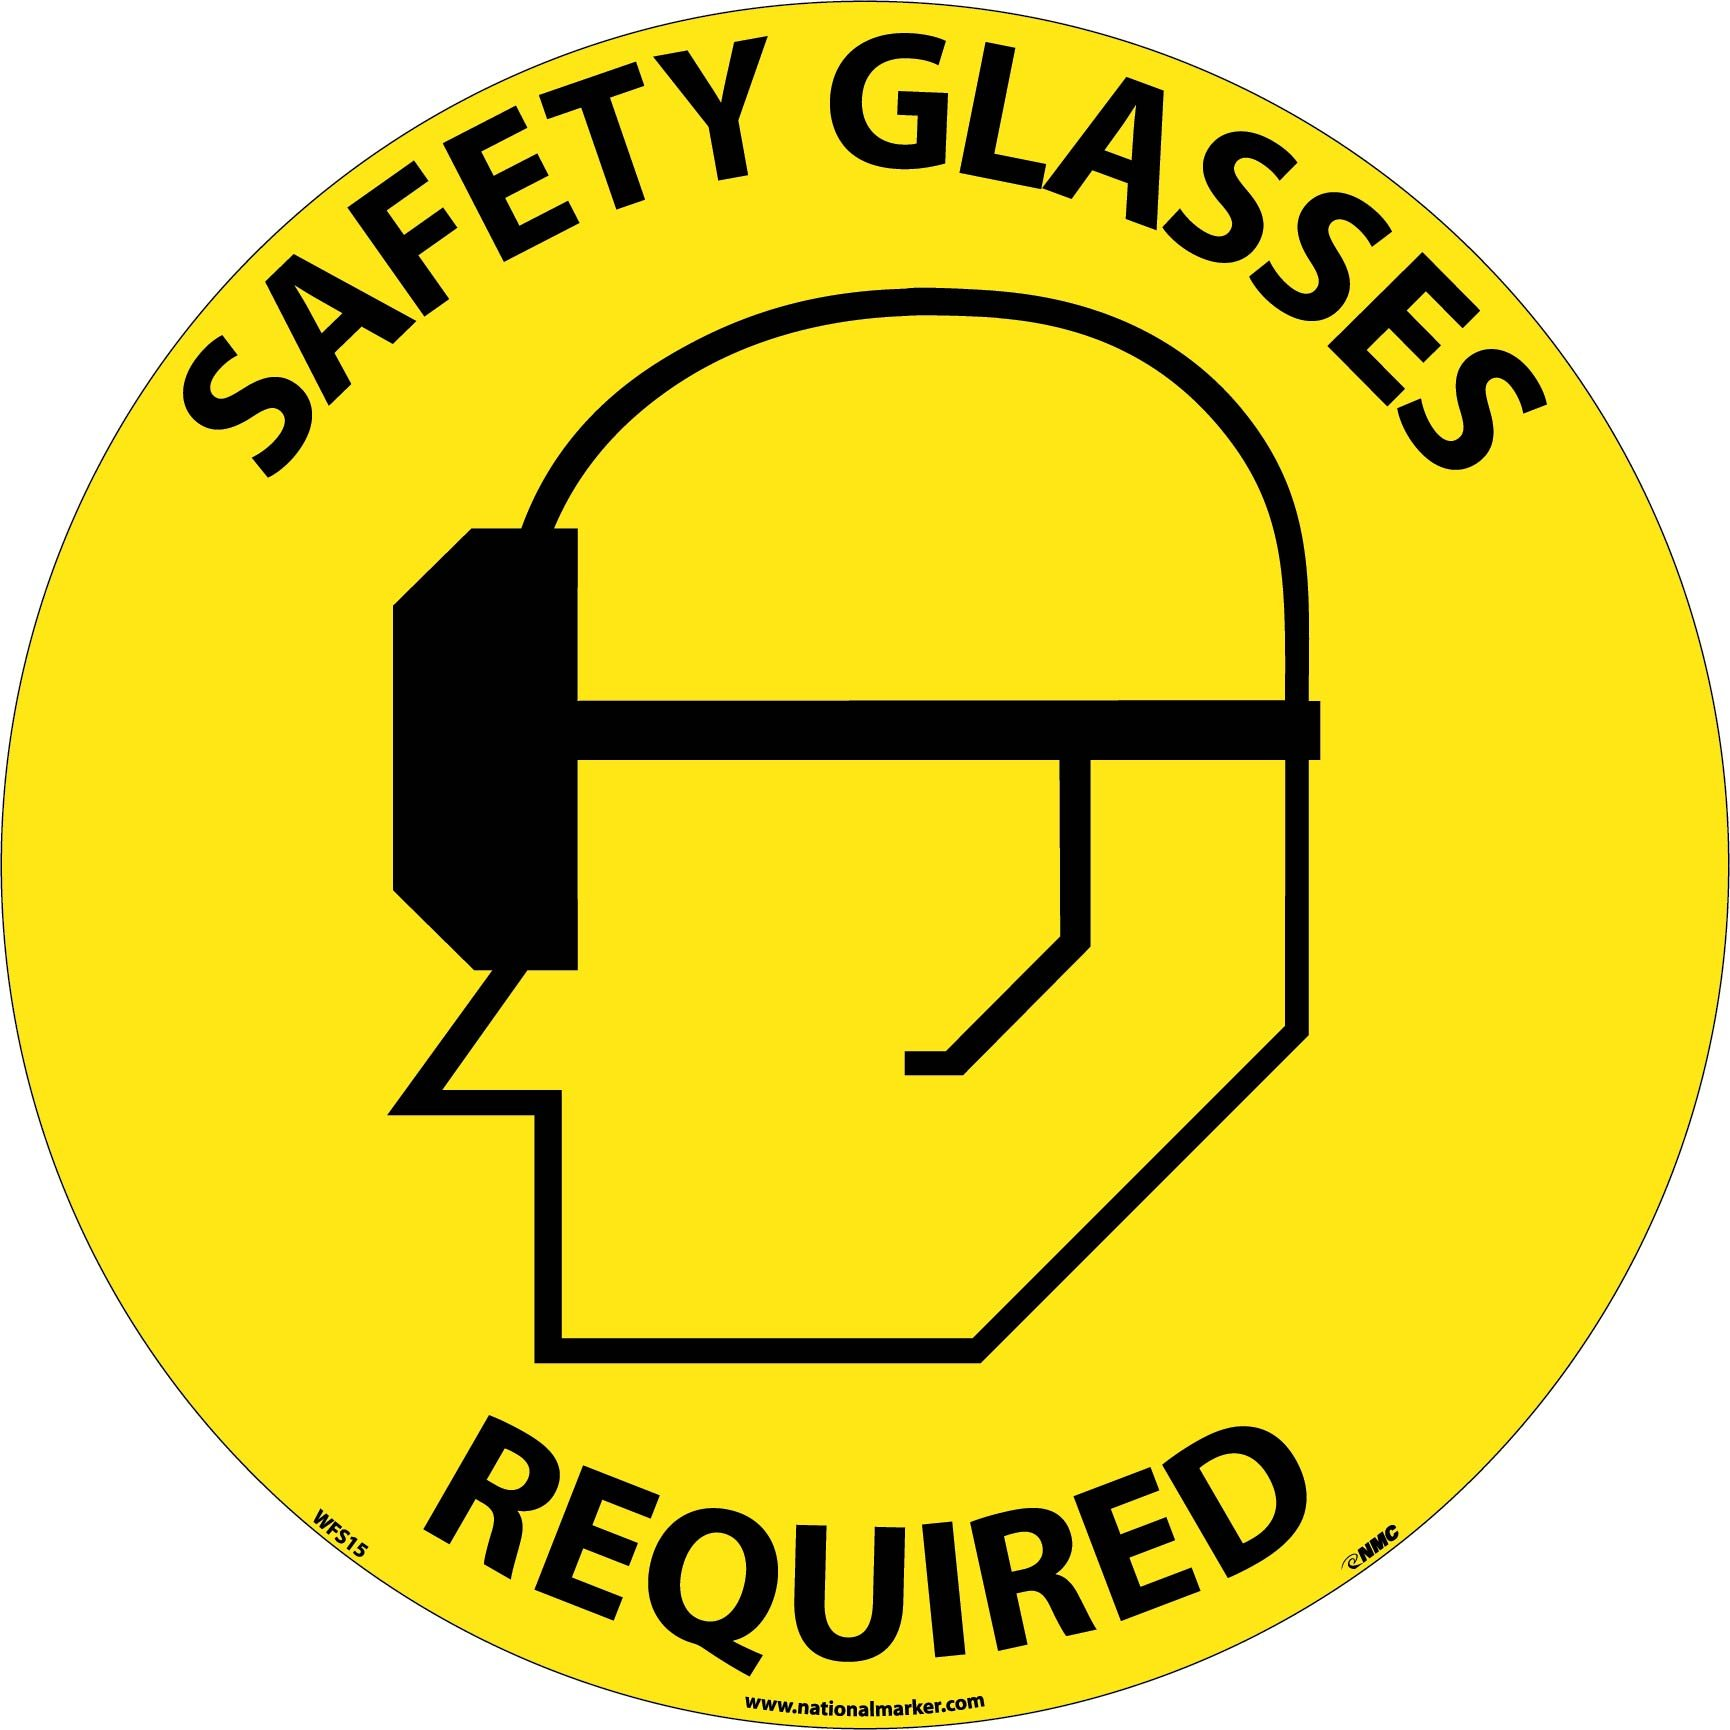 Free Safety Clip Art, Download Free Clip Art, Free Clip Art.